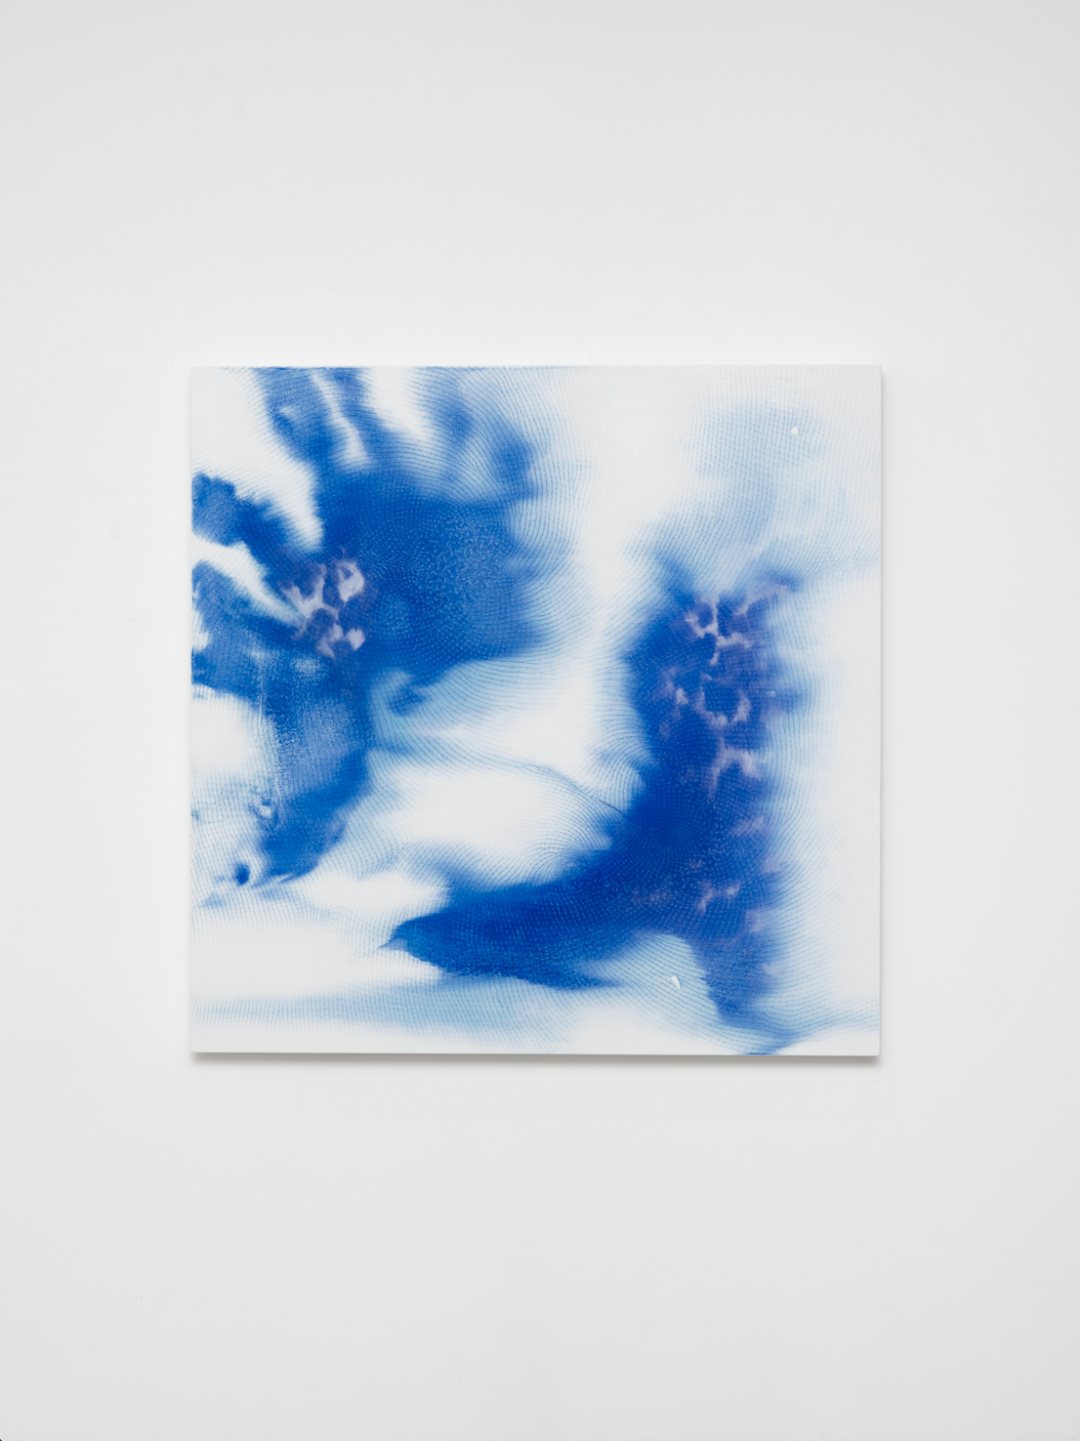 Shirazeh Houshiary Mind and Matter, 2020 Pigment and pencil on white Aquacryl on canvas and aluminium 120 x 120 x 5.5 cm 47 1:8 x 47 1:8 x 2 1:8 in © Shirazeh Houshiary Courtesy Lisson Gallery.png